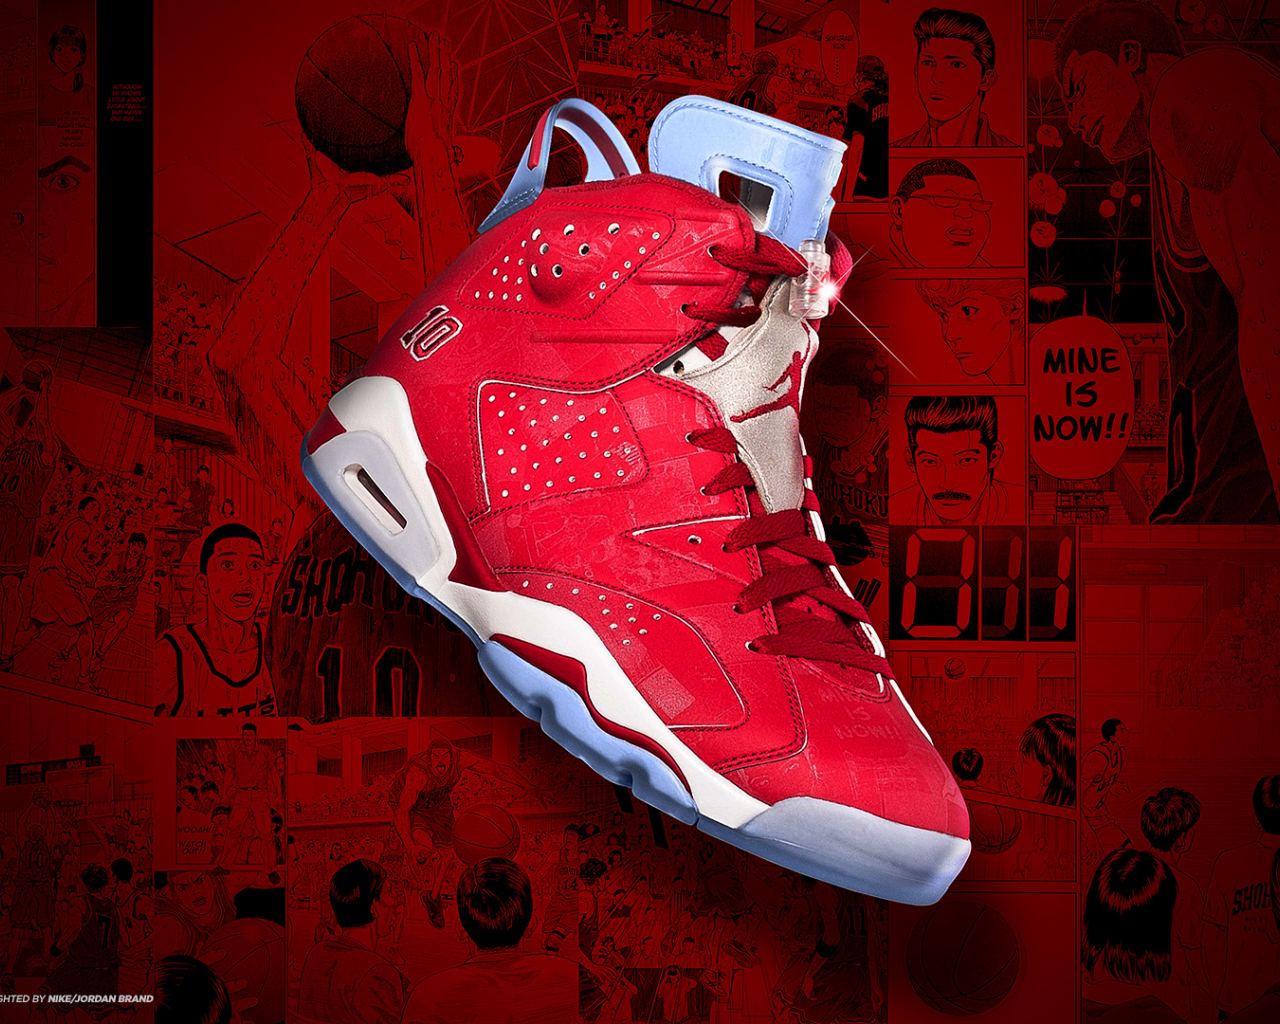 Free Download Jordan 6 Retro Slam Dunk X Jordan Wallpaper 1080p And 4k Resolutions 1920x1080 For Your Desktop Mobile Tablet Explore 43 Jordan Wallpaper 4k Jordan Hd Wallpaper Chicago